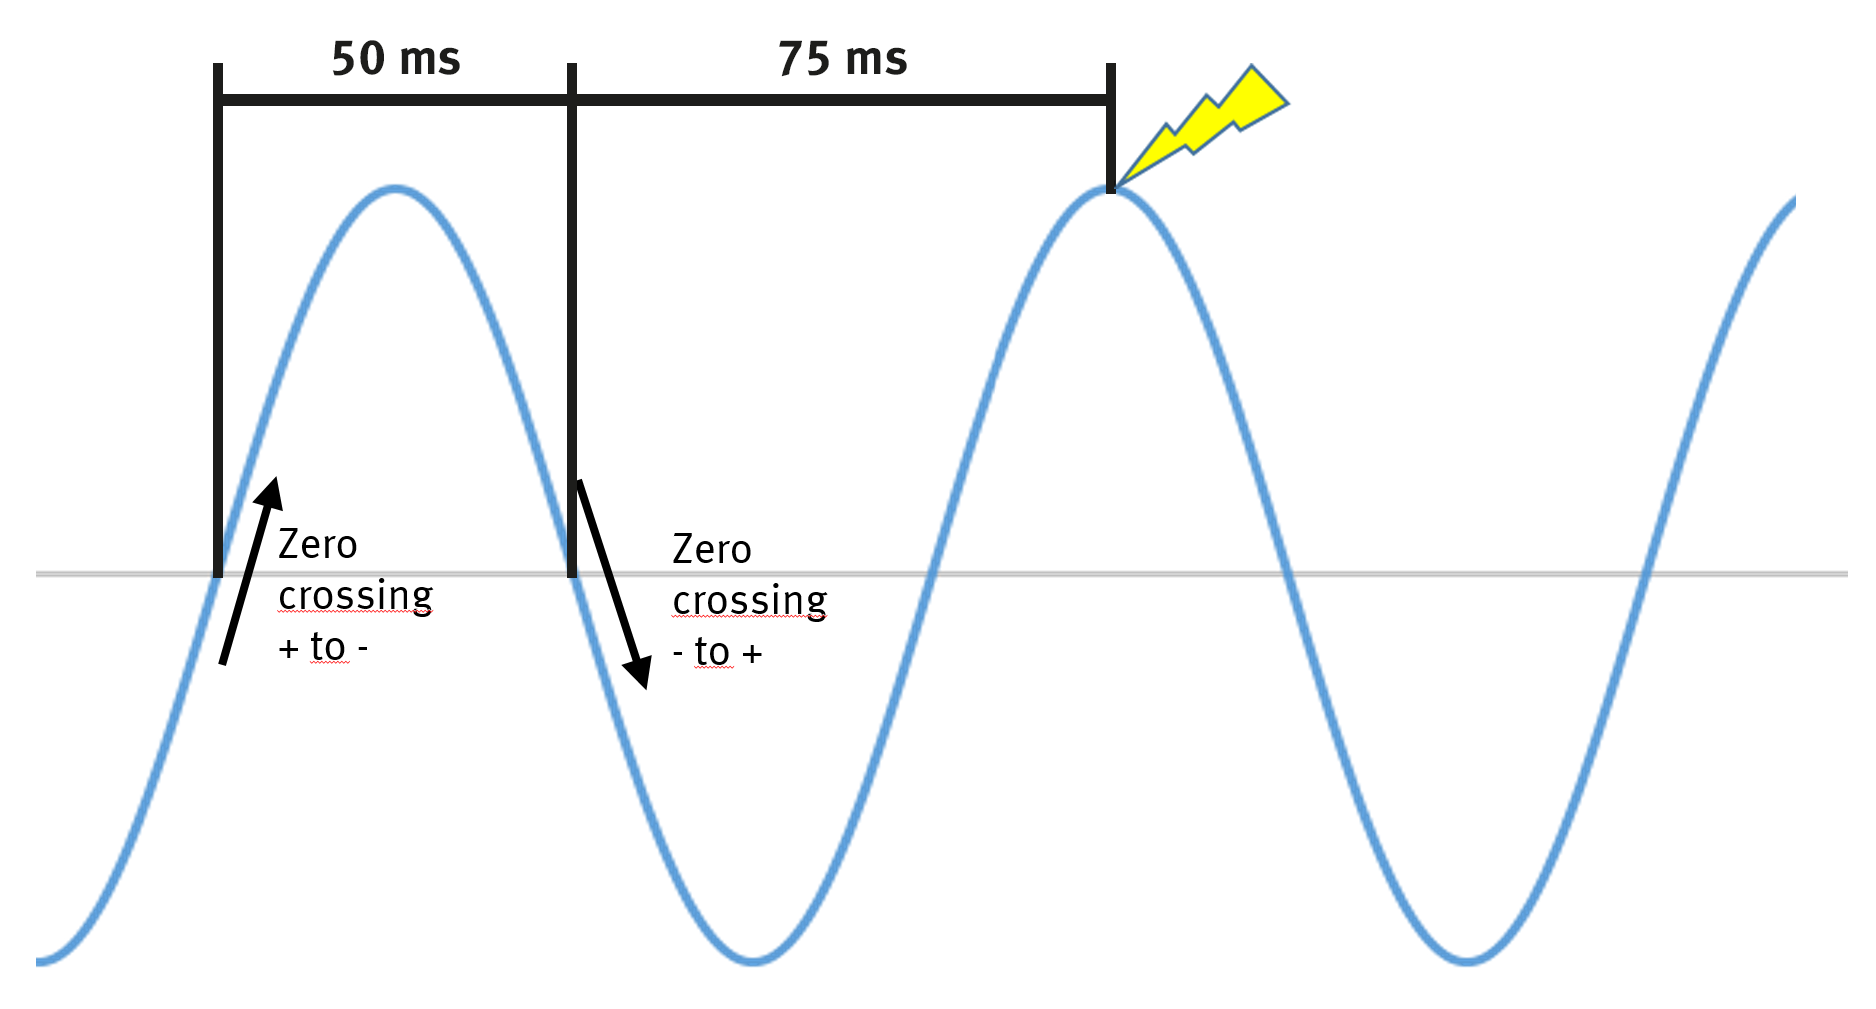 Figure 3: Stimulus timing